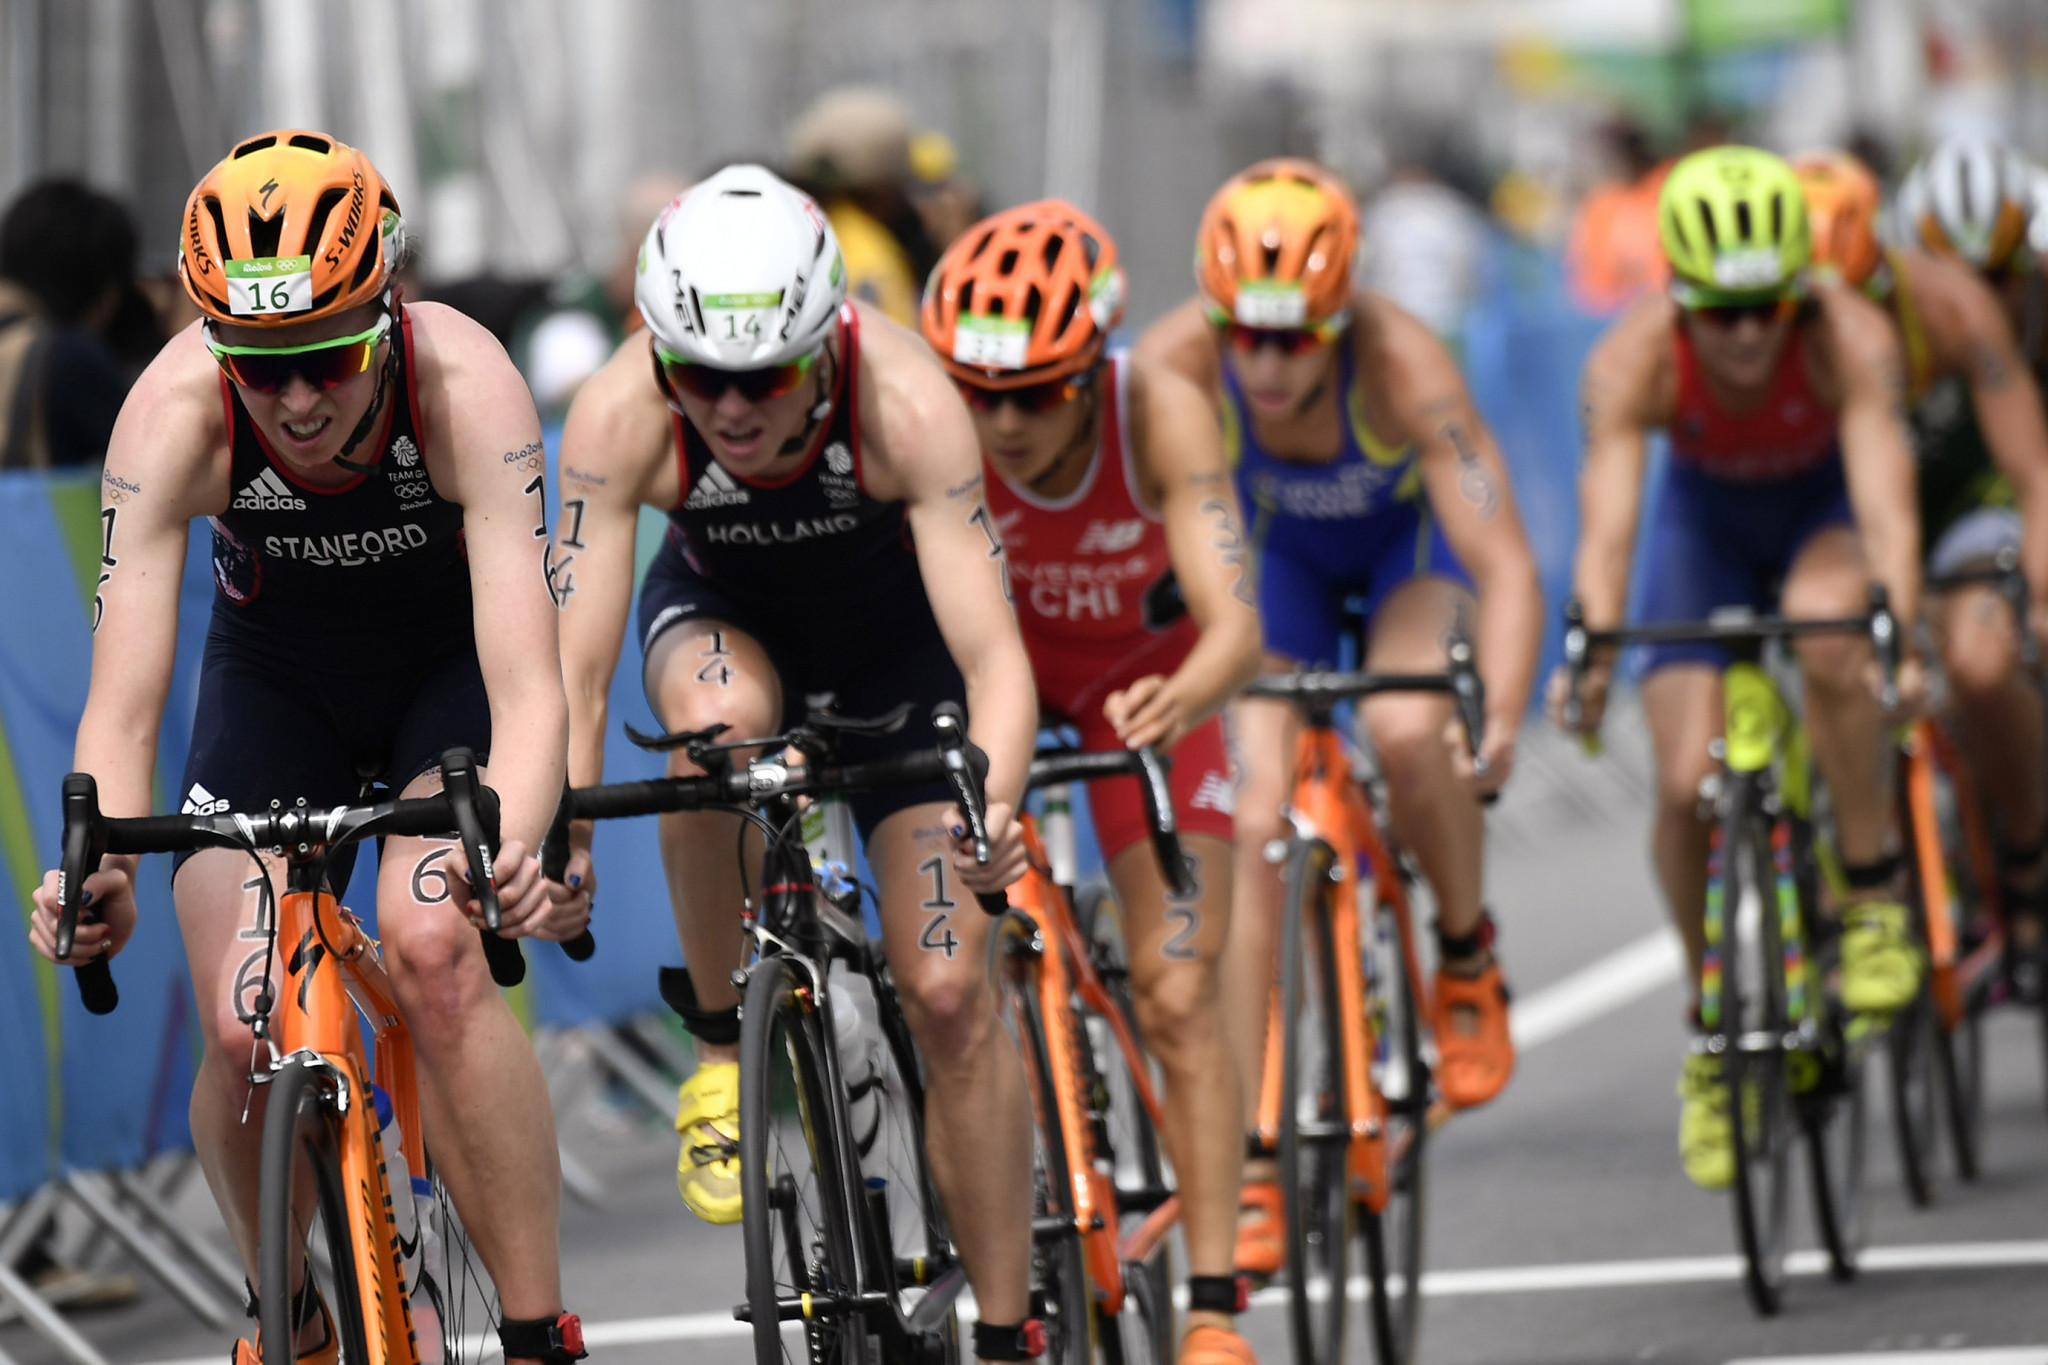 ITU makes history in announcing nearly half of Tokyo 2020 technical officials will be female